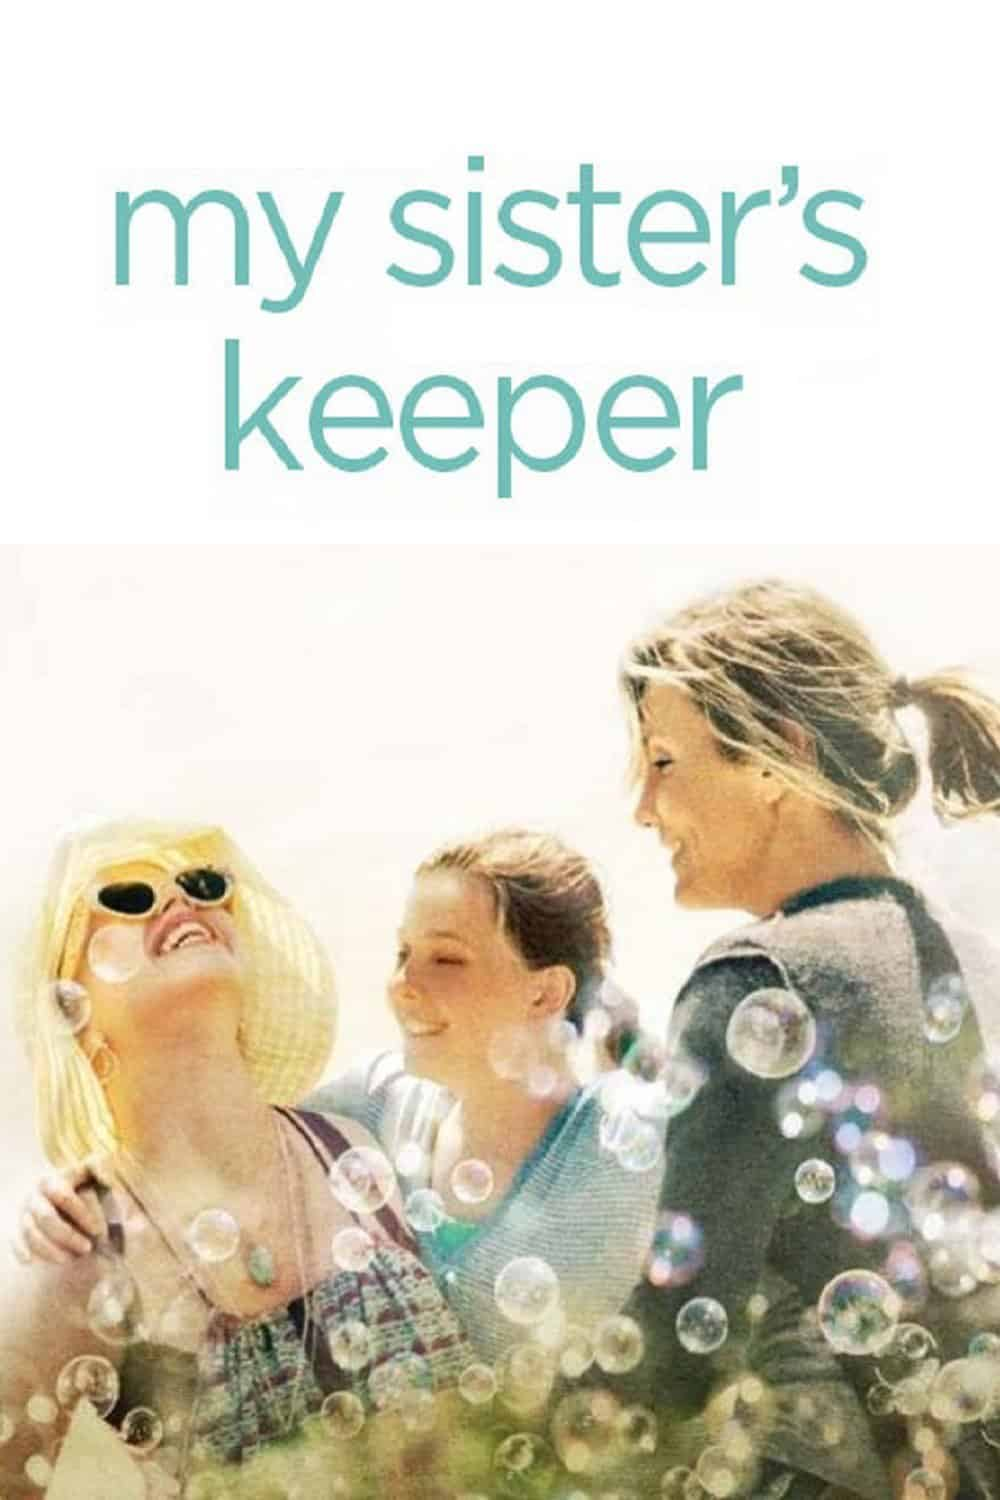 My Sister's Keeper, 2009